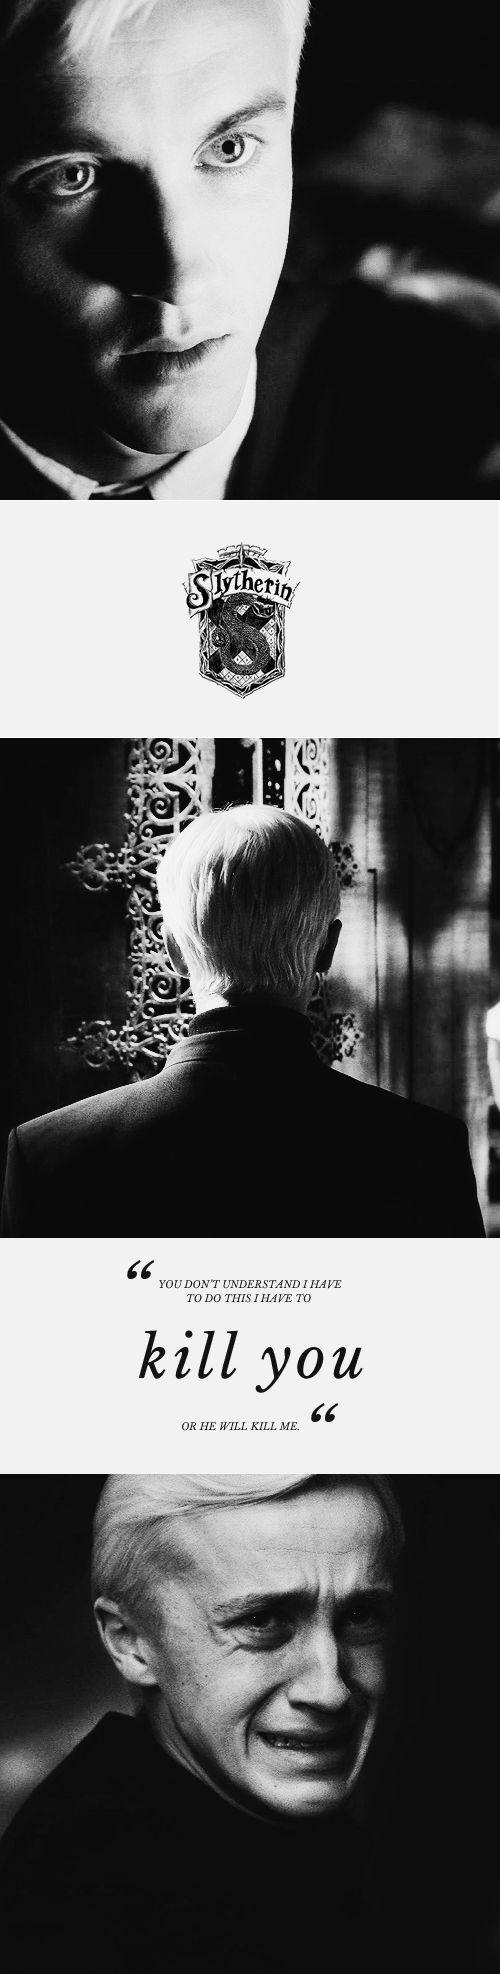 Draco Malfoy is definitely one of my favourite fictional character. He is so much more than just a villain.